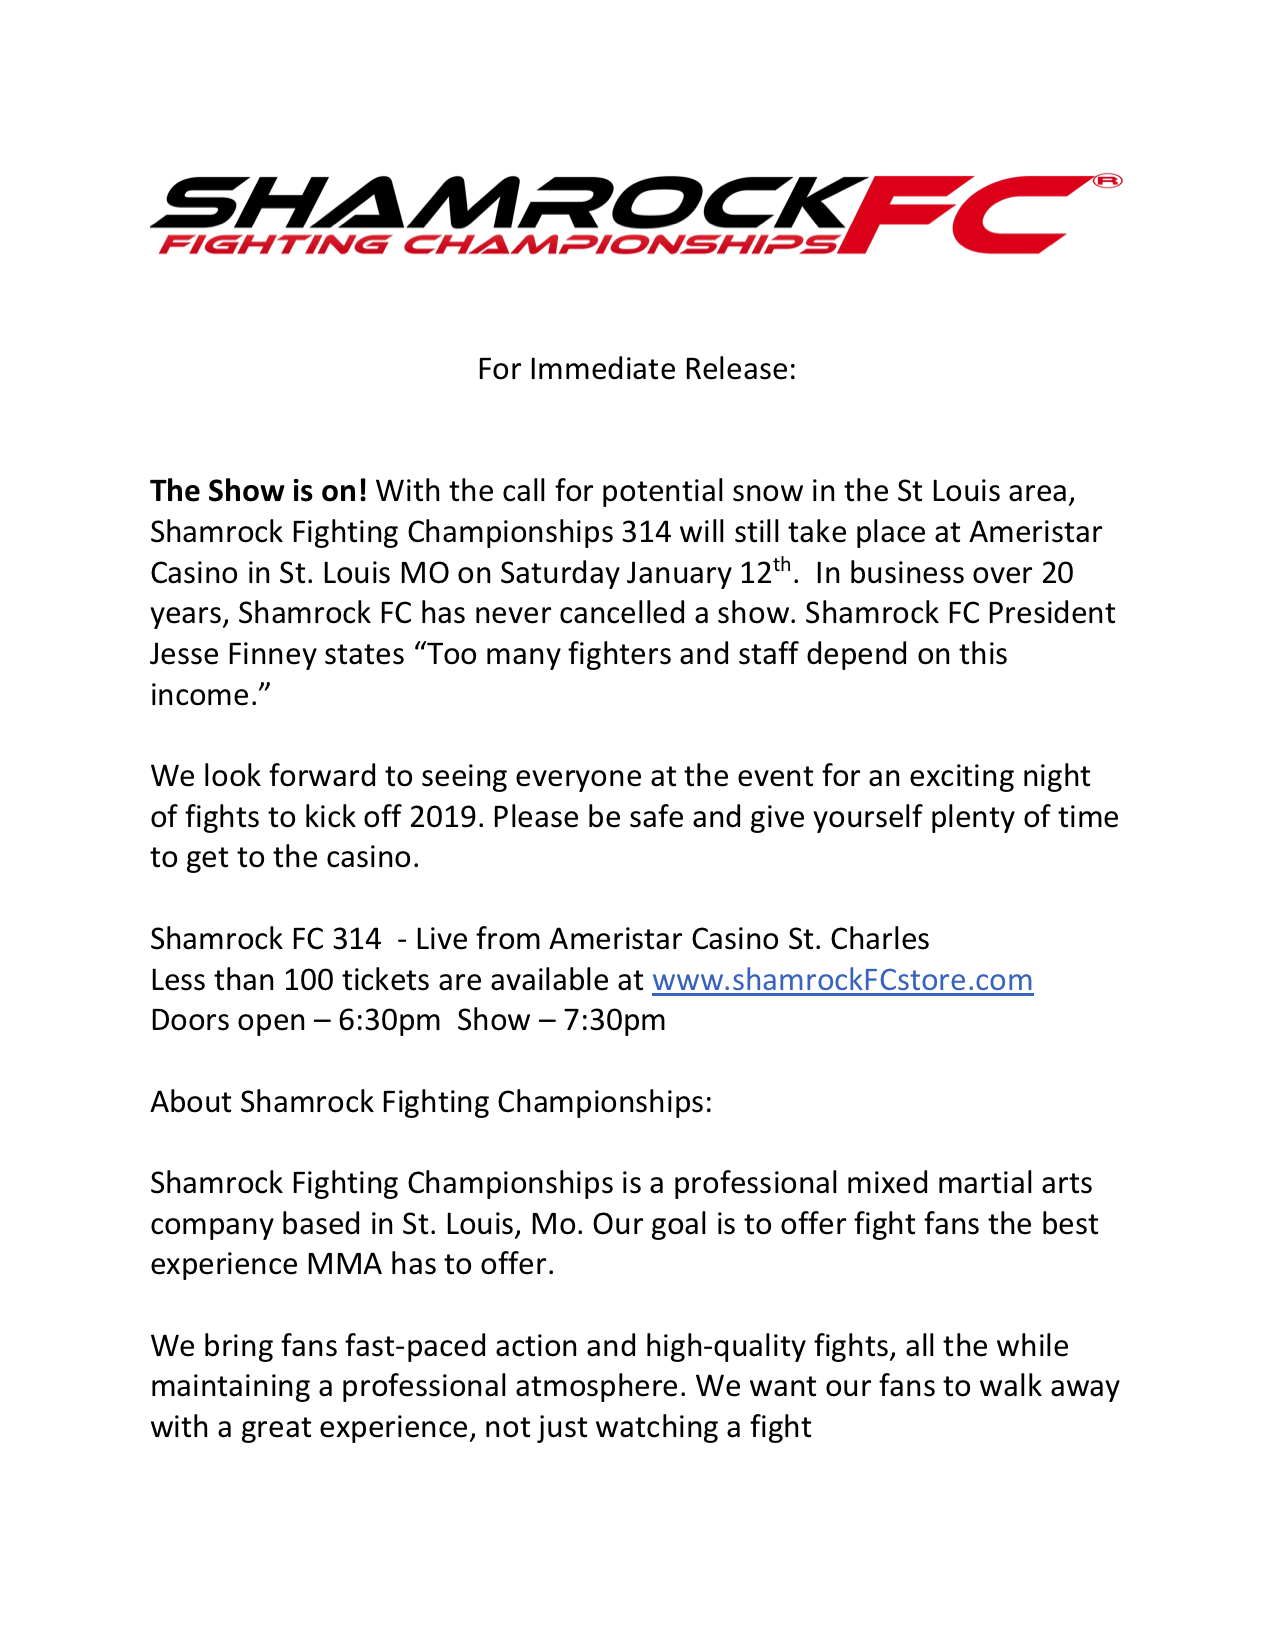 shamrock314announcement